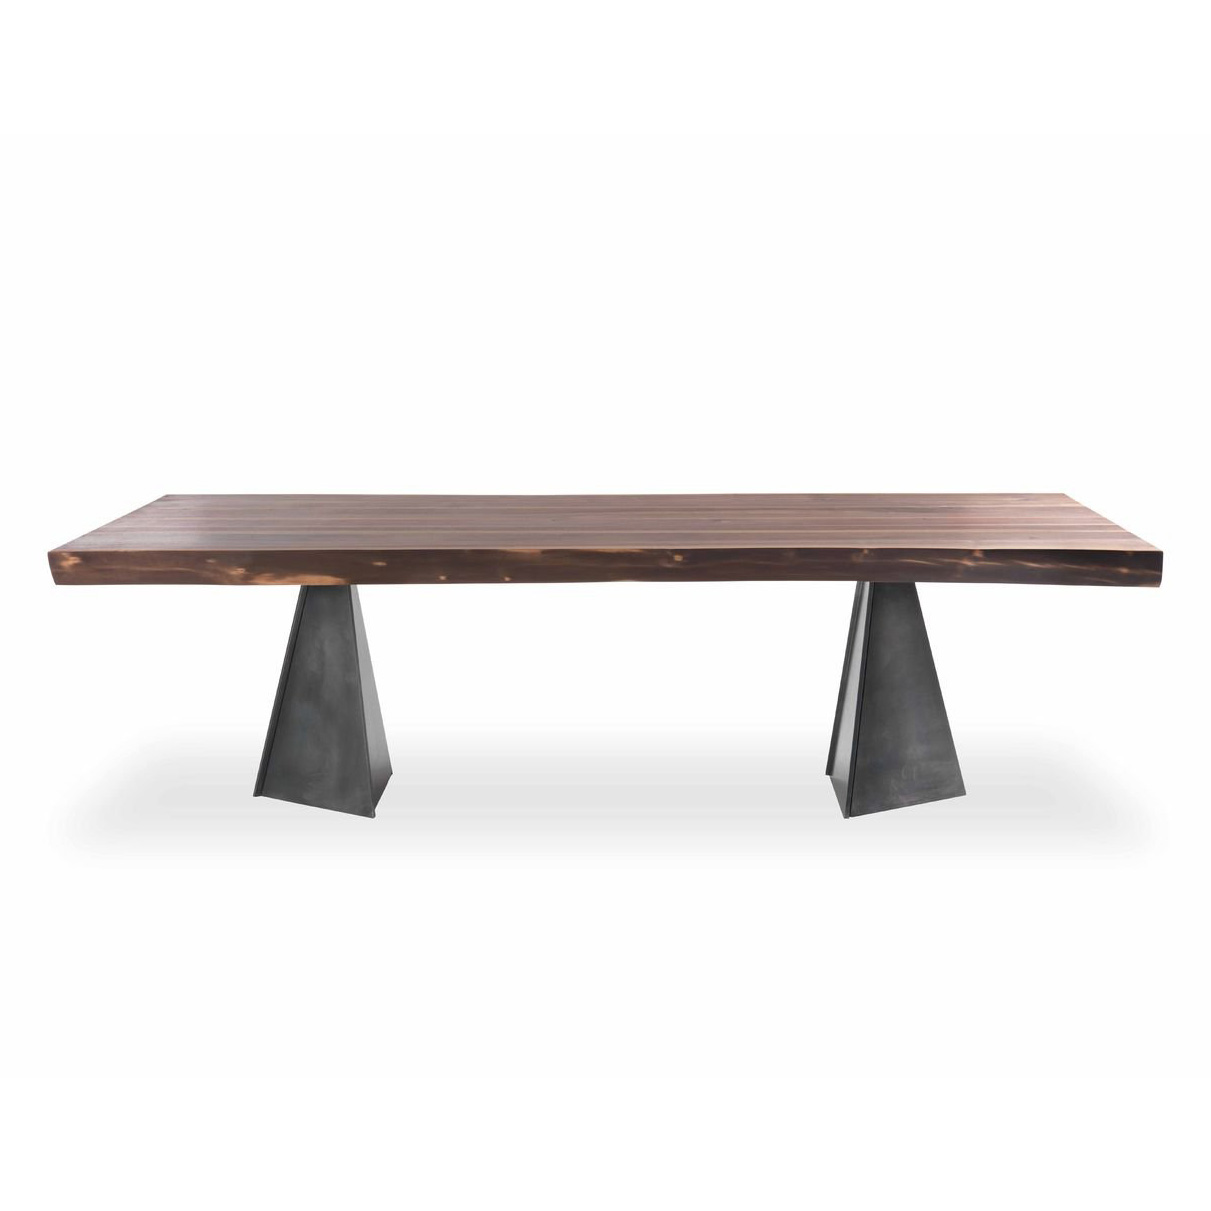 Woodstock dining table from Riva 1920